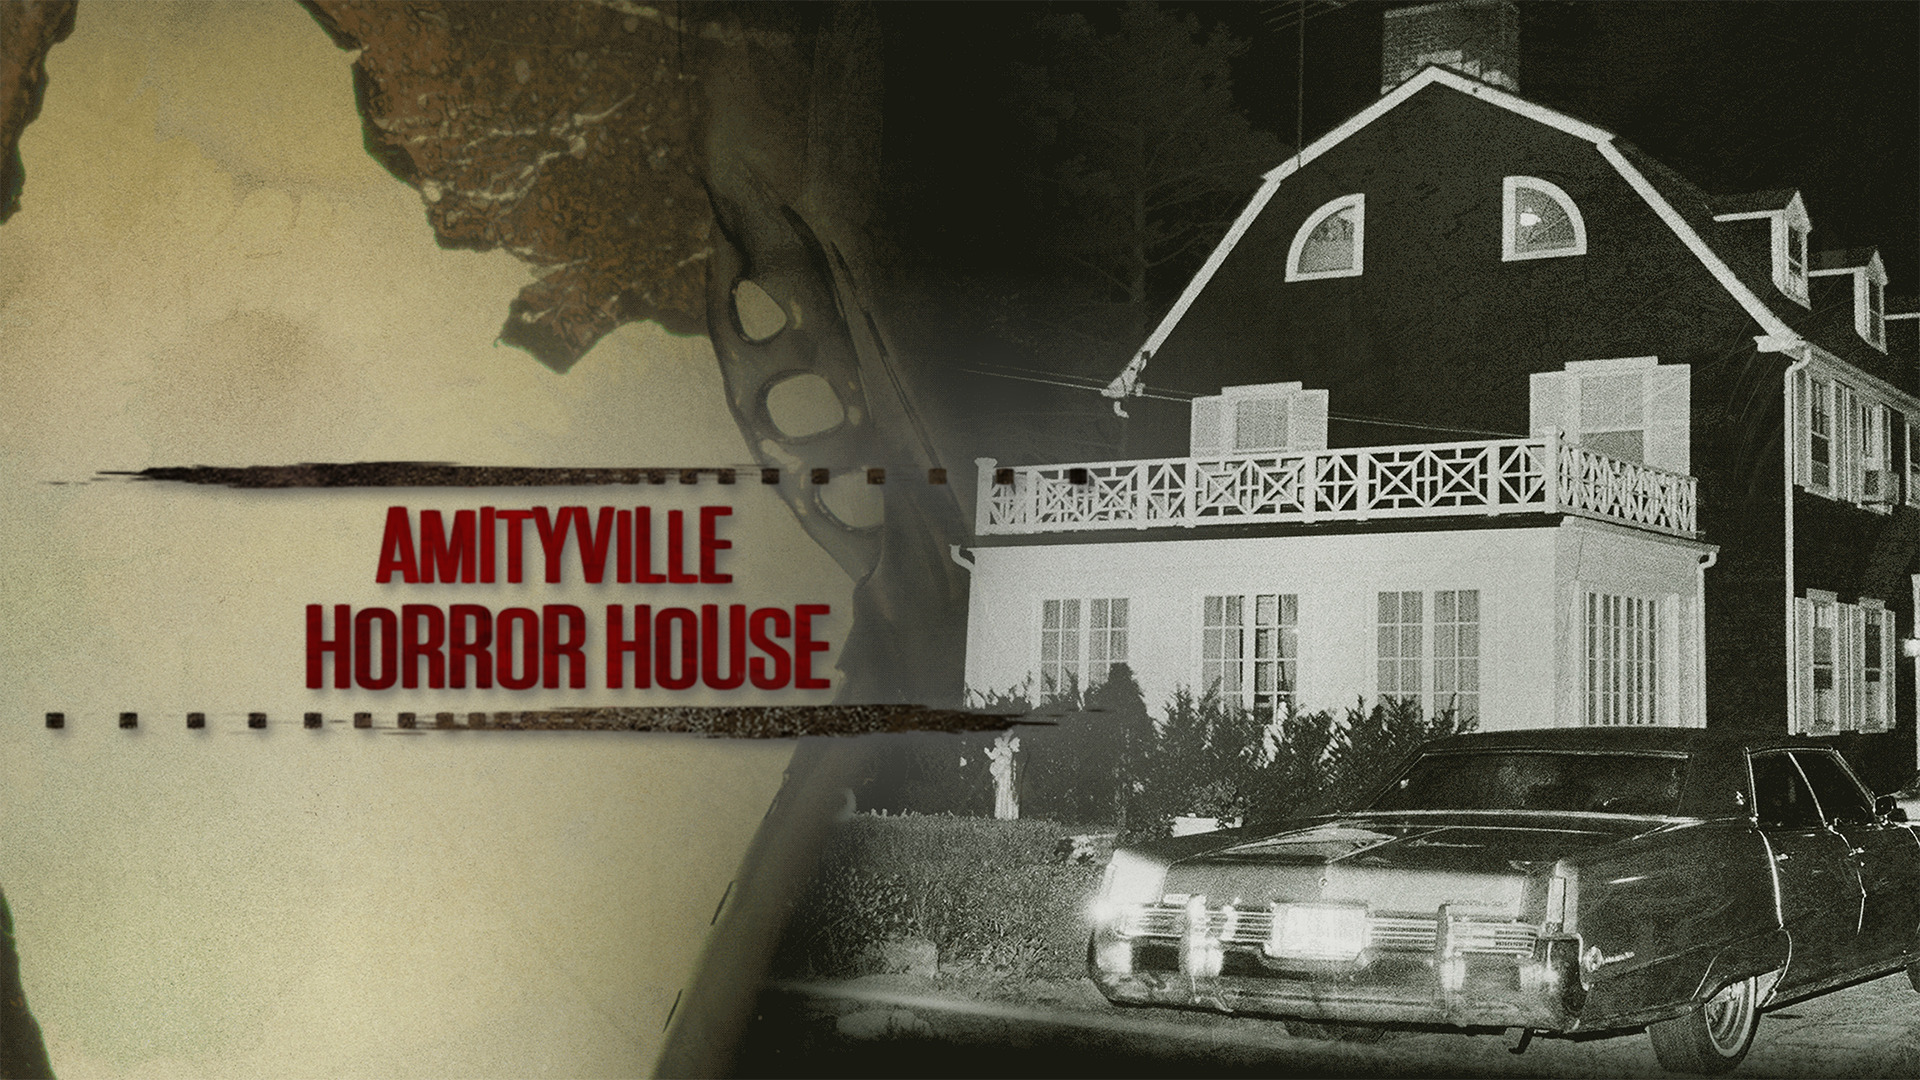 Amityville Horror House - Season 1